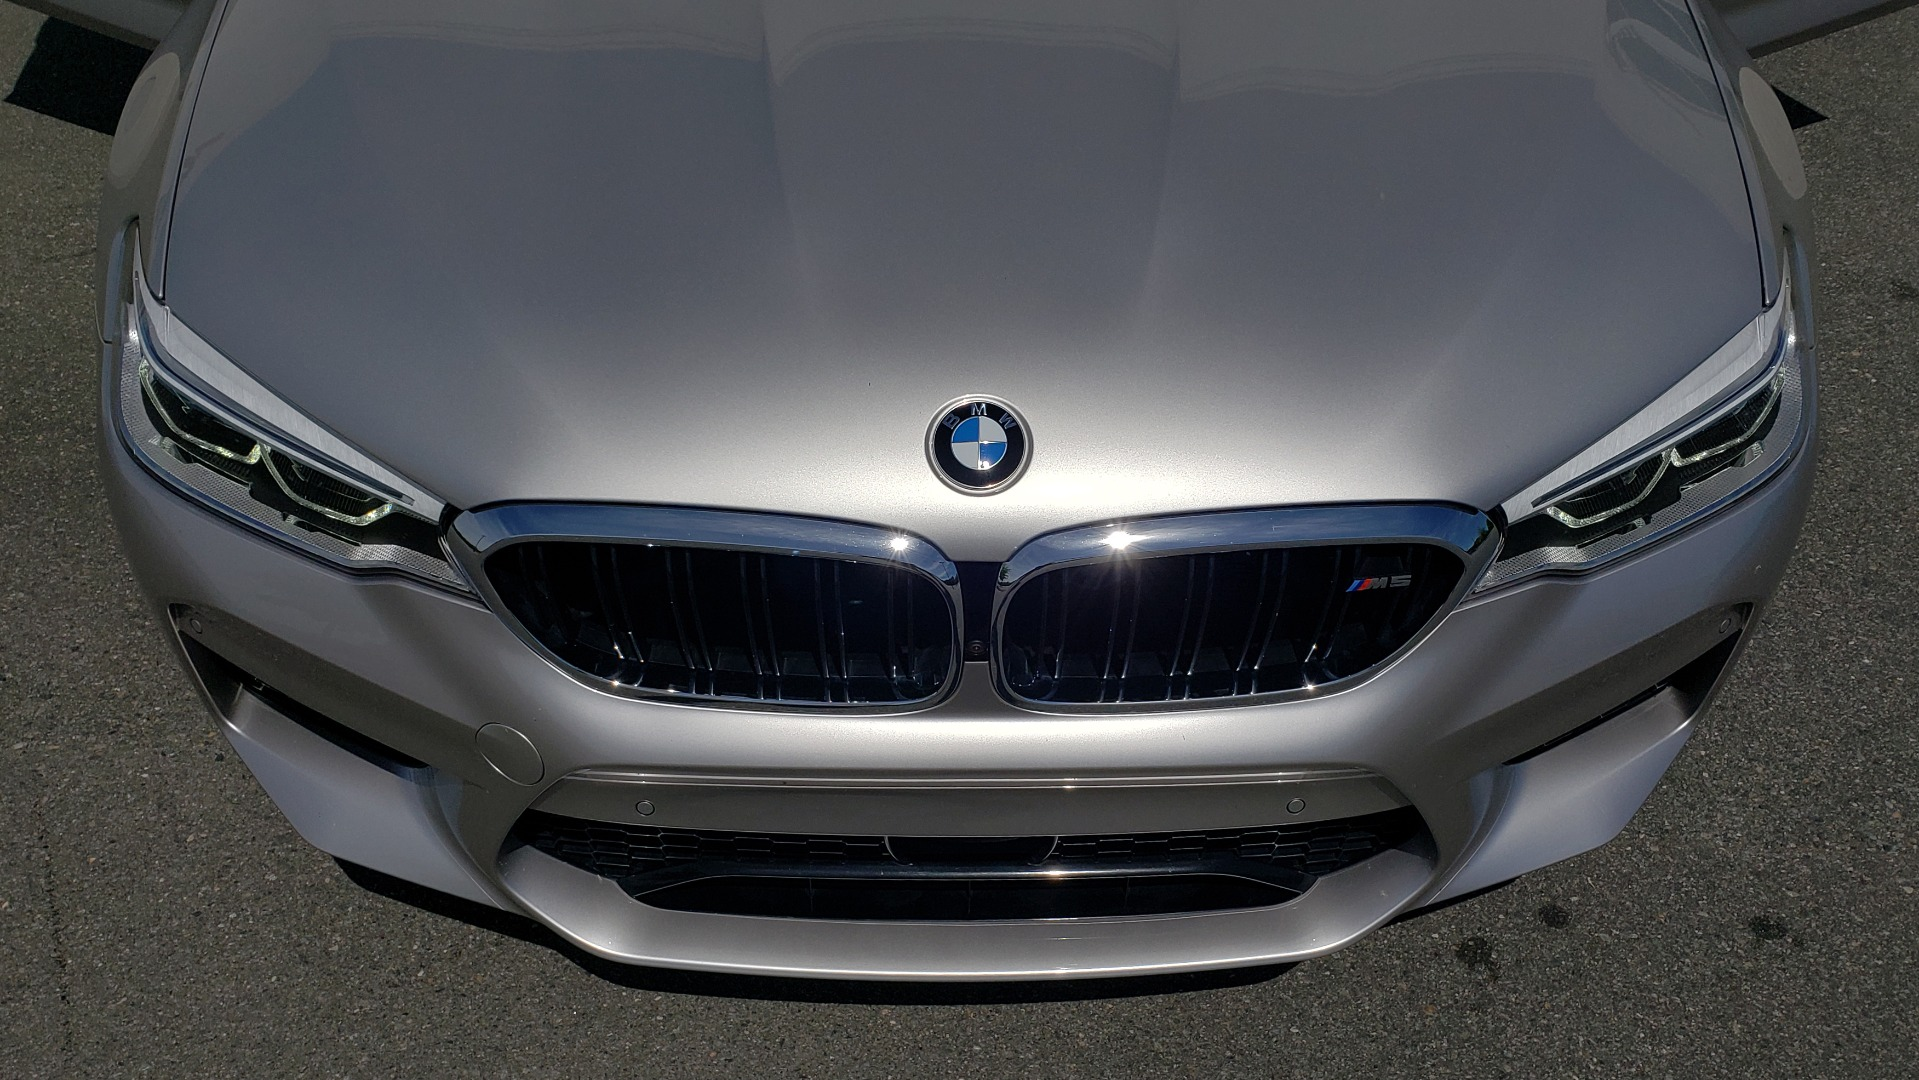 Used 2018 BMW M5 SEDAN / EXEC PKG / DRVR ASST PLUS / MOONROOF / B&W SND for sale $81,495 at Formula Imports in Charlotte NC 28227 21